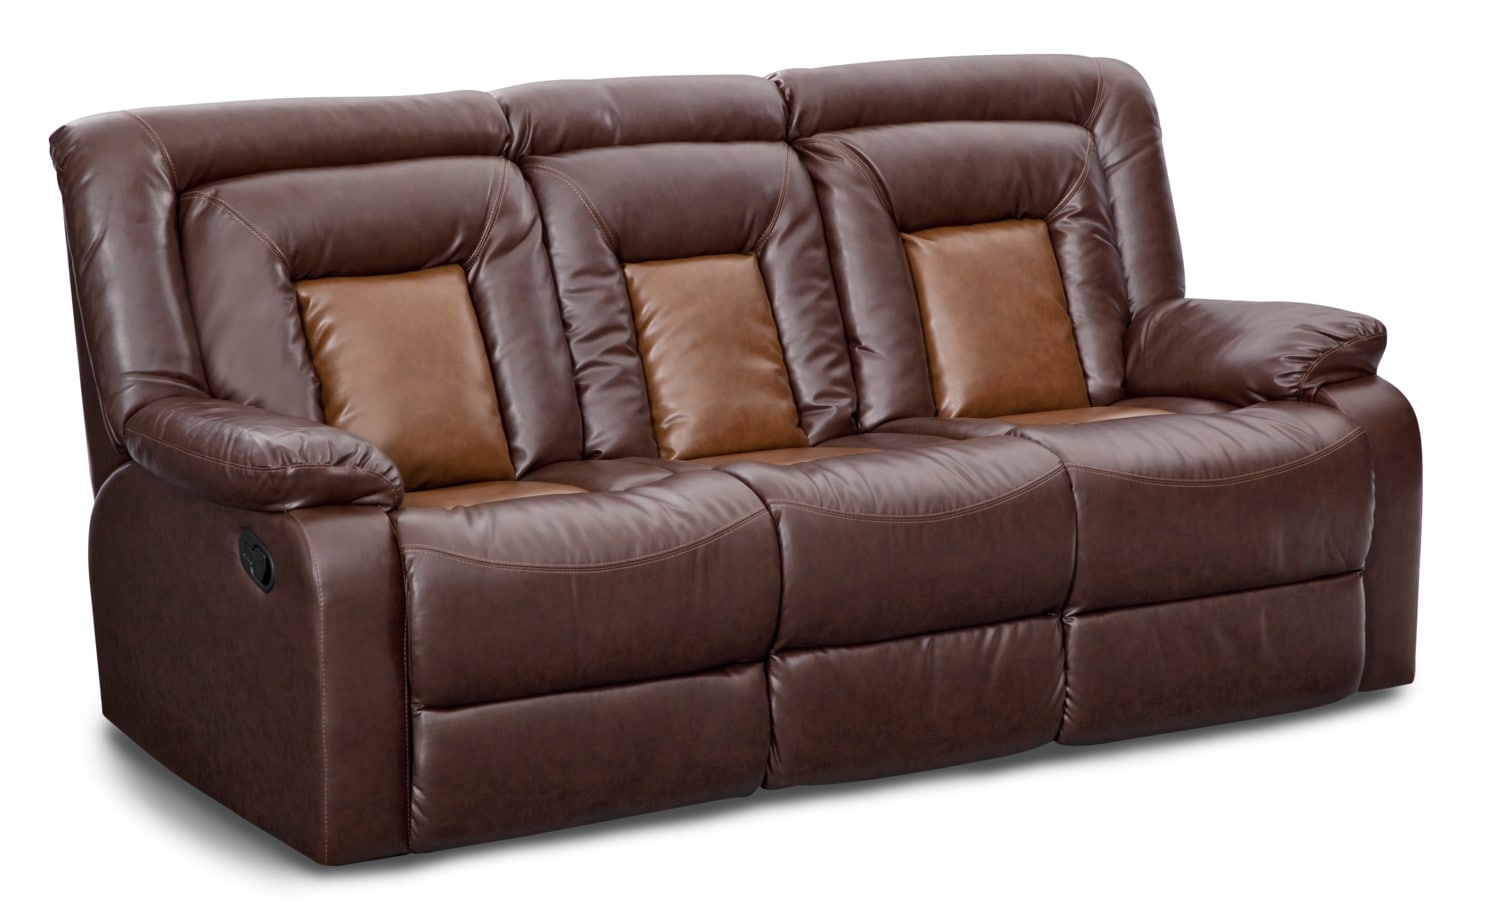 American Furniture Jpg: Mustang Dual-Reclining Sofa With Console